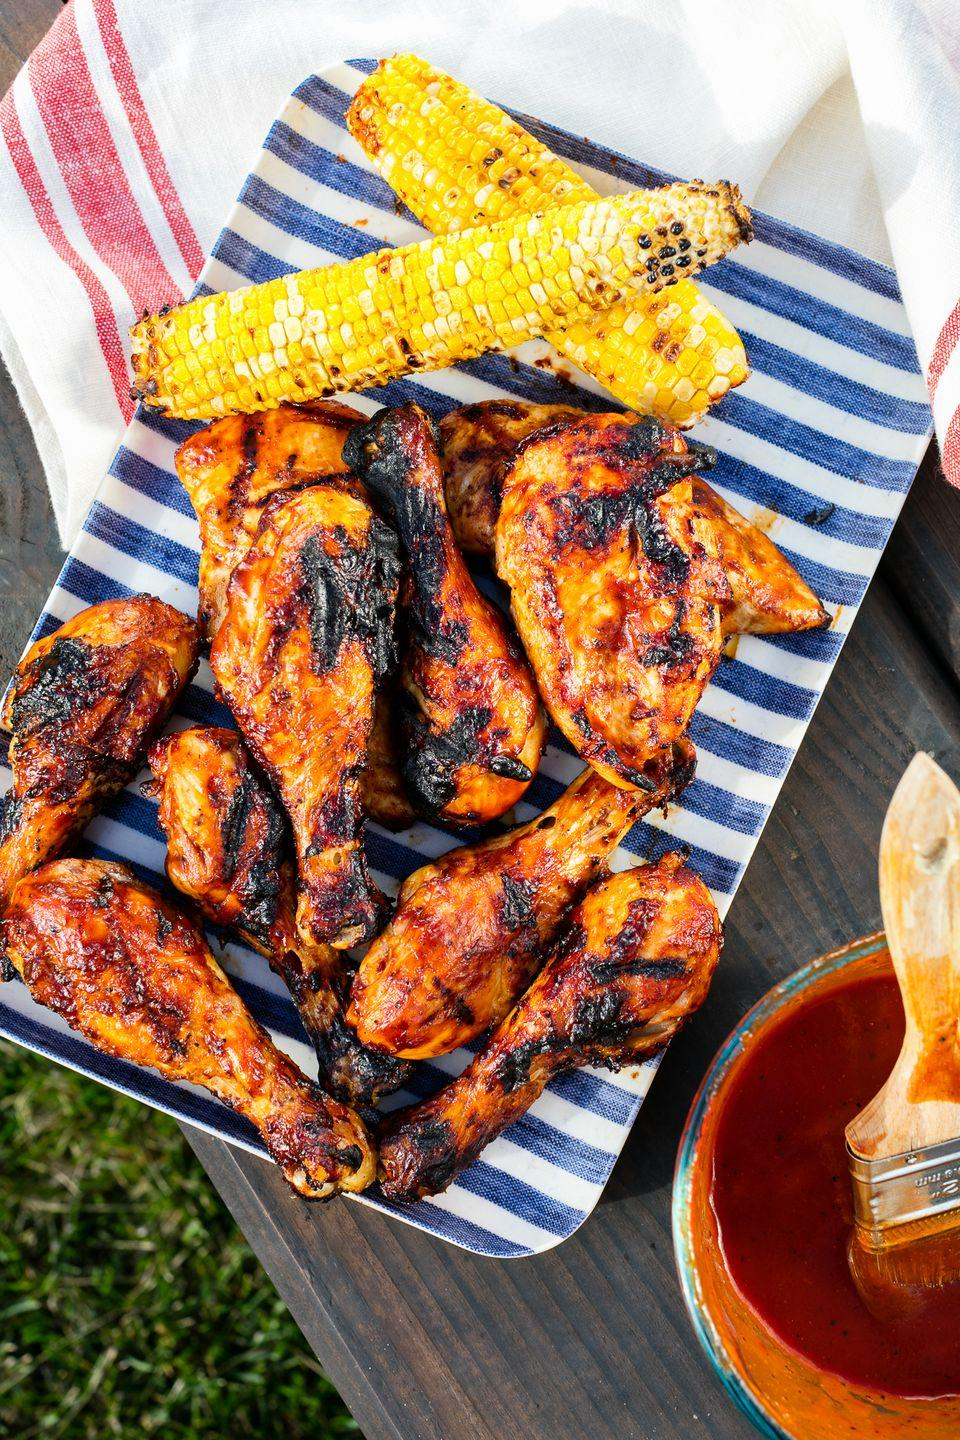 "<p>This cookout classic is a serious crowd-pleaser.</p><p>Get the recipe from <a href=""/cooking/recipe-ideas/recipes/a47360/bbq-grilled-chicken-recipe/"" data-ylk=""slk:Delish"" class=""link rapid-noclick-resp"">Delish</a>.</p>"